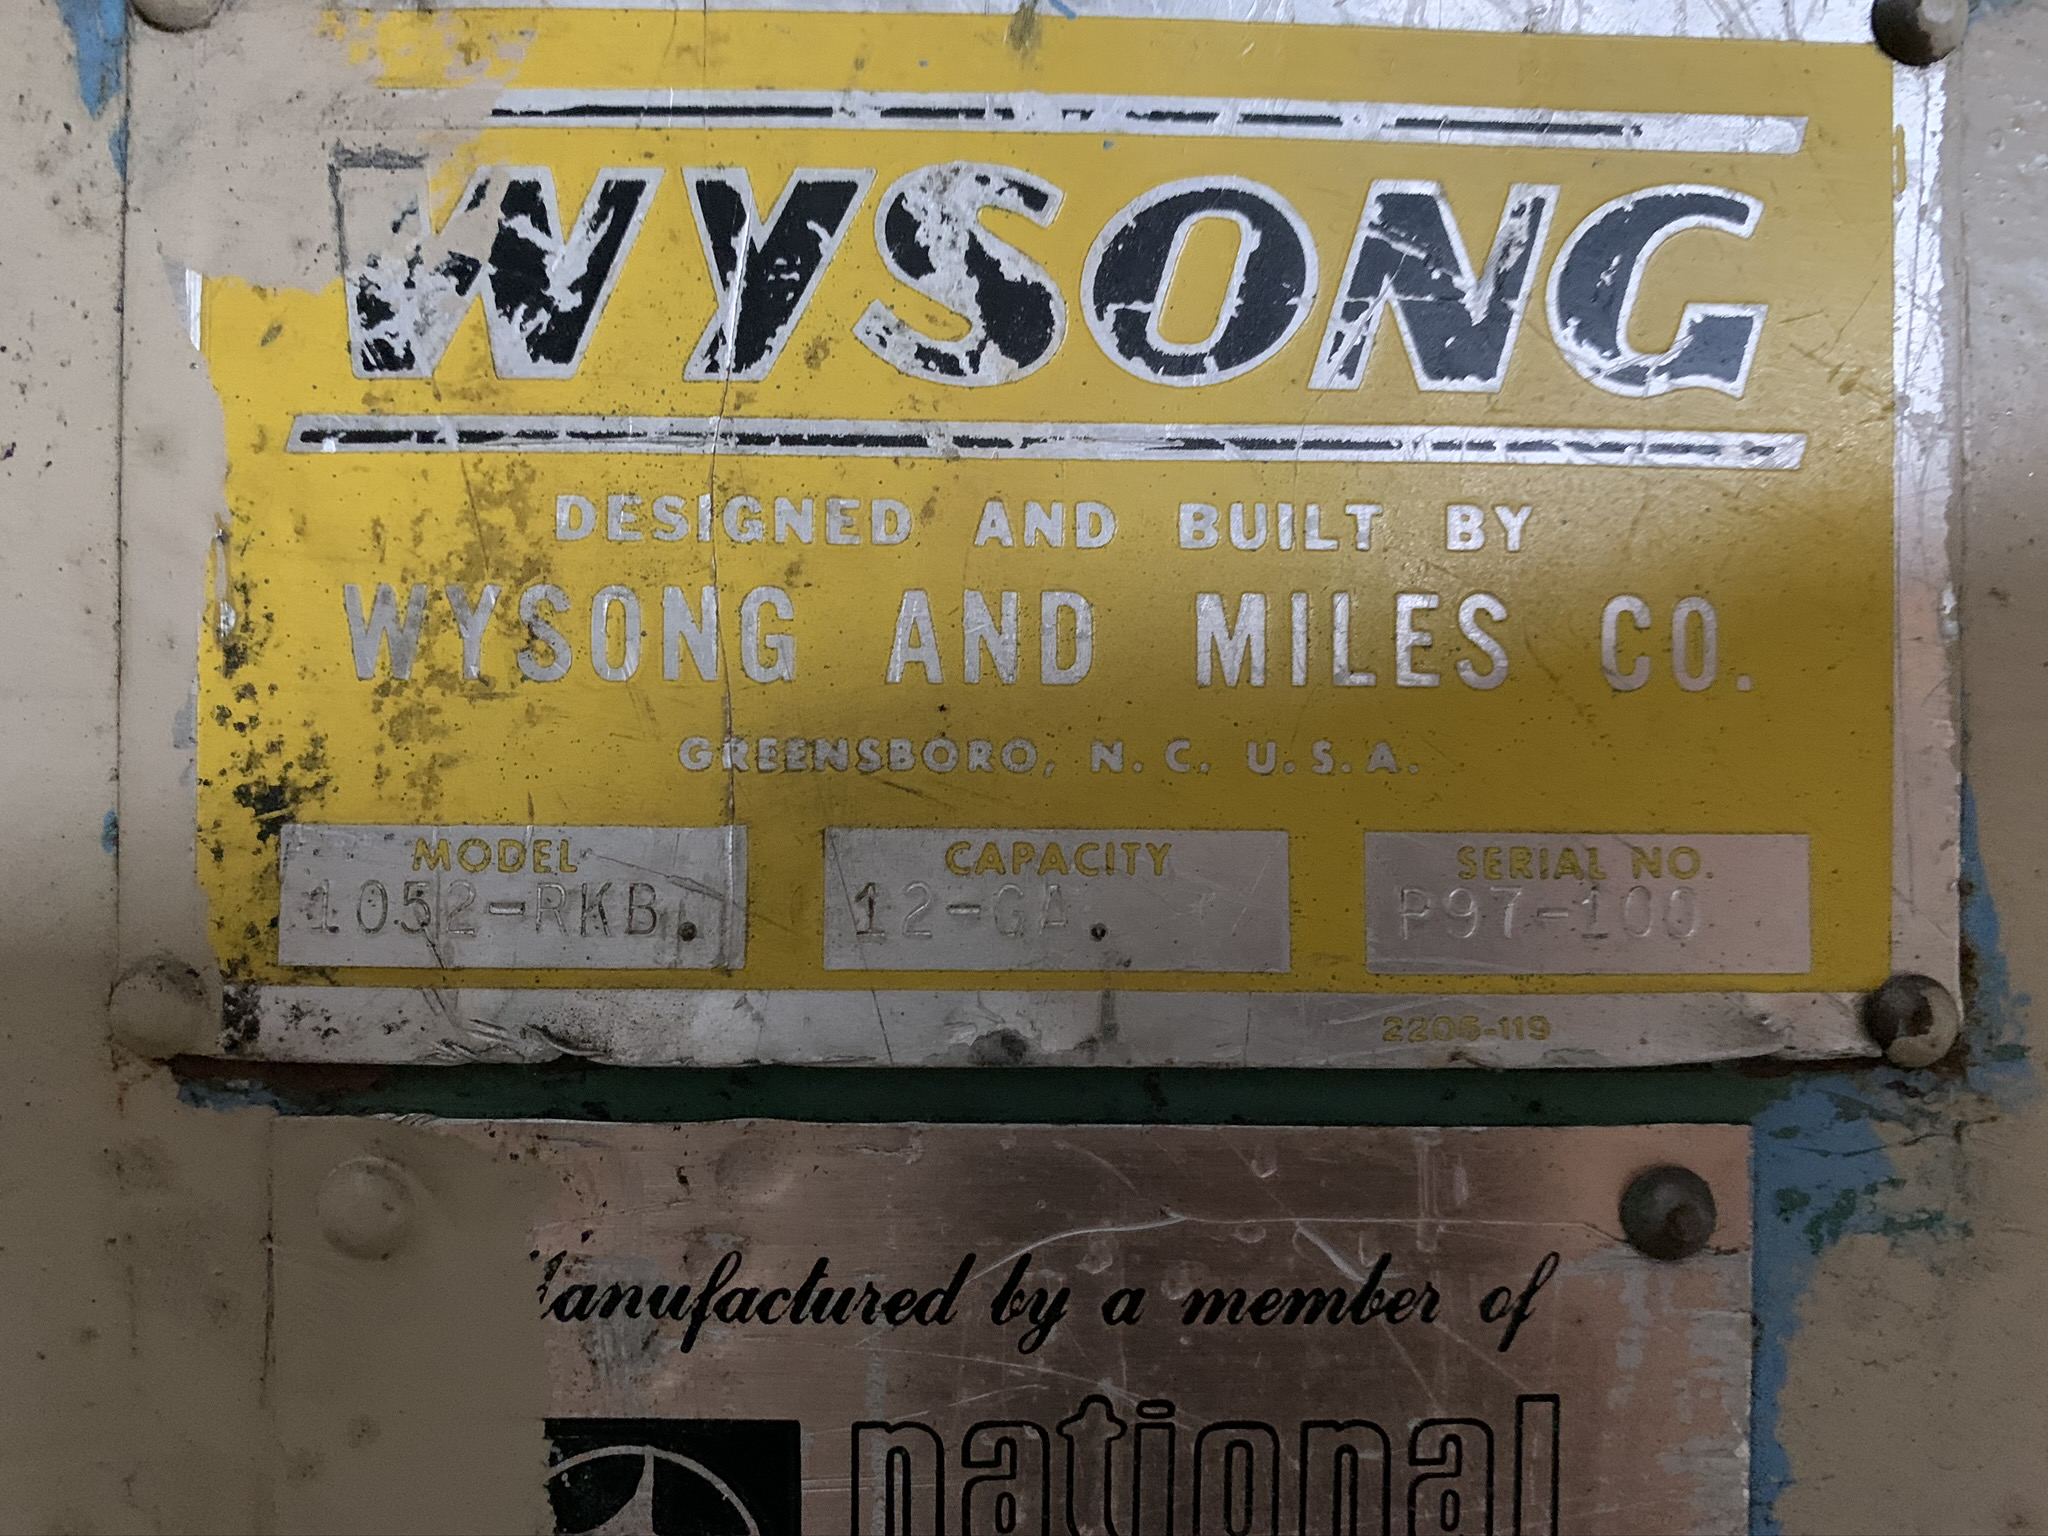 """WYSONG MODEL 1052 RKB LINE SHEAR; S/N P97-100, 52"""" WIDTH, AIR CLUTCH, BOW TIE BLADE, 15 HP 230/460 - Image 2 of 5"""